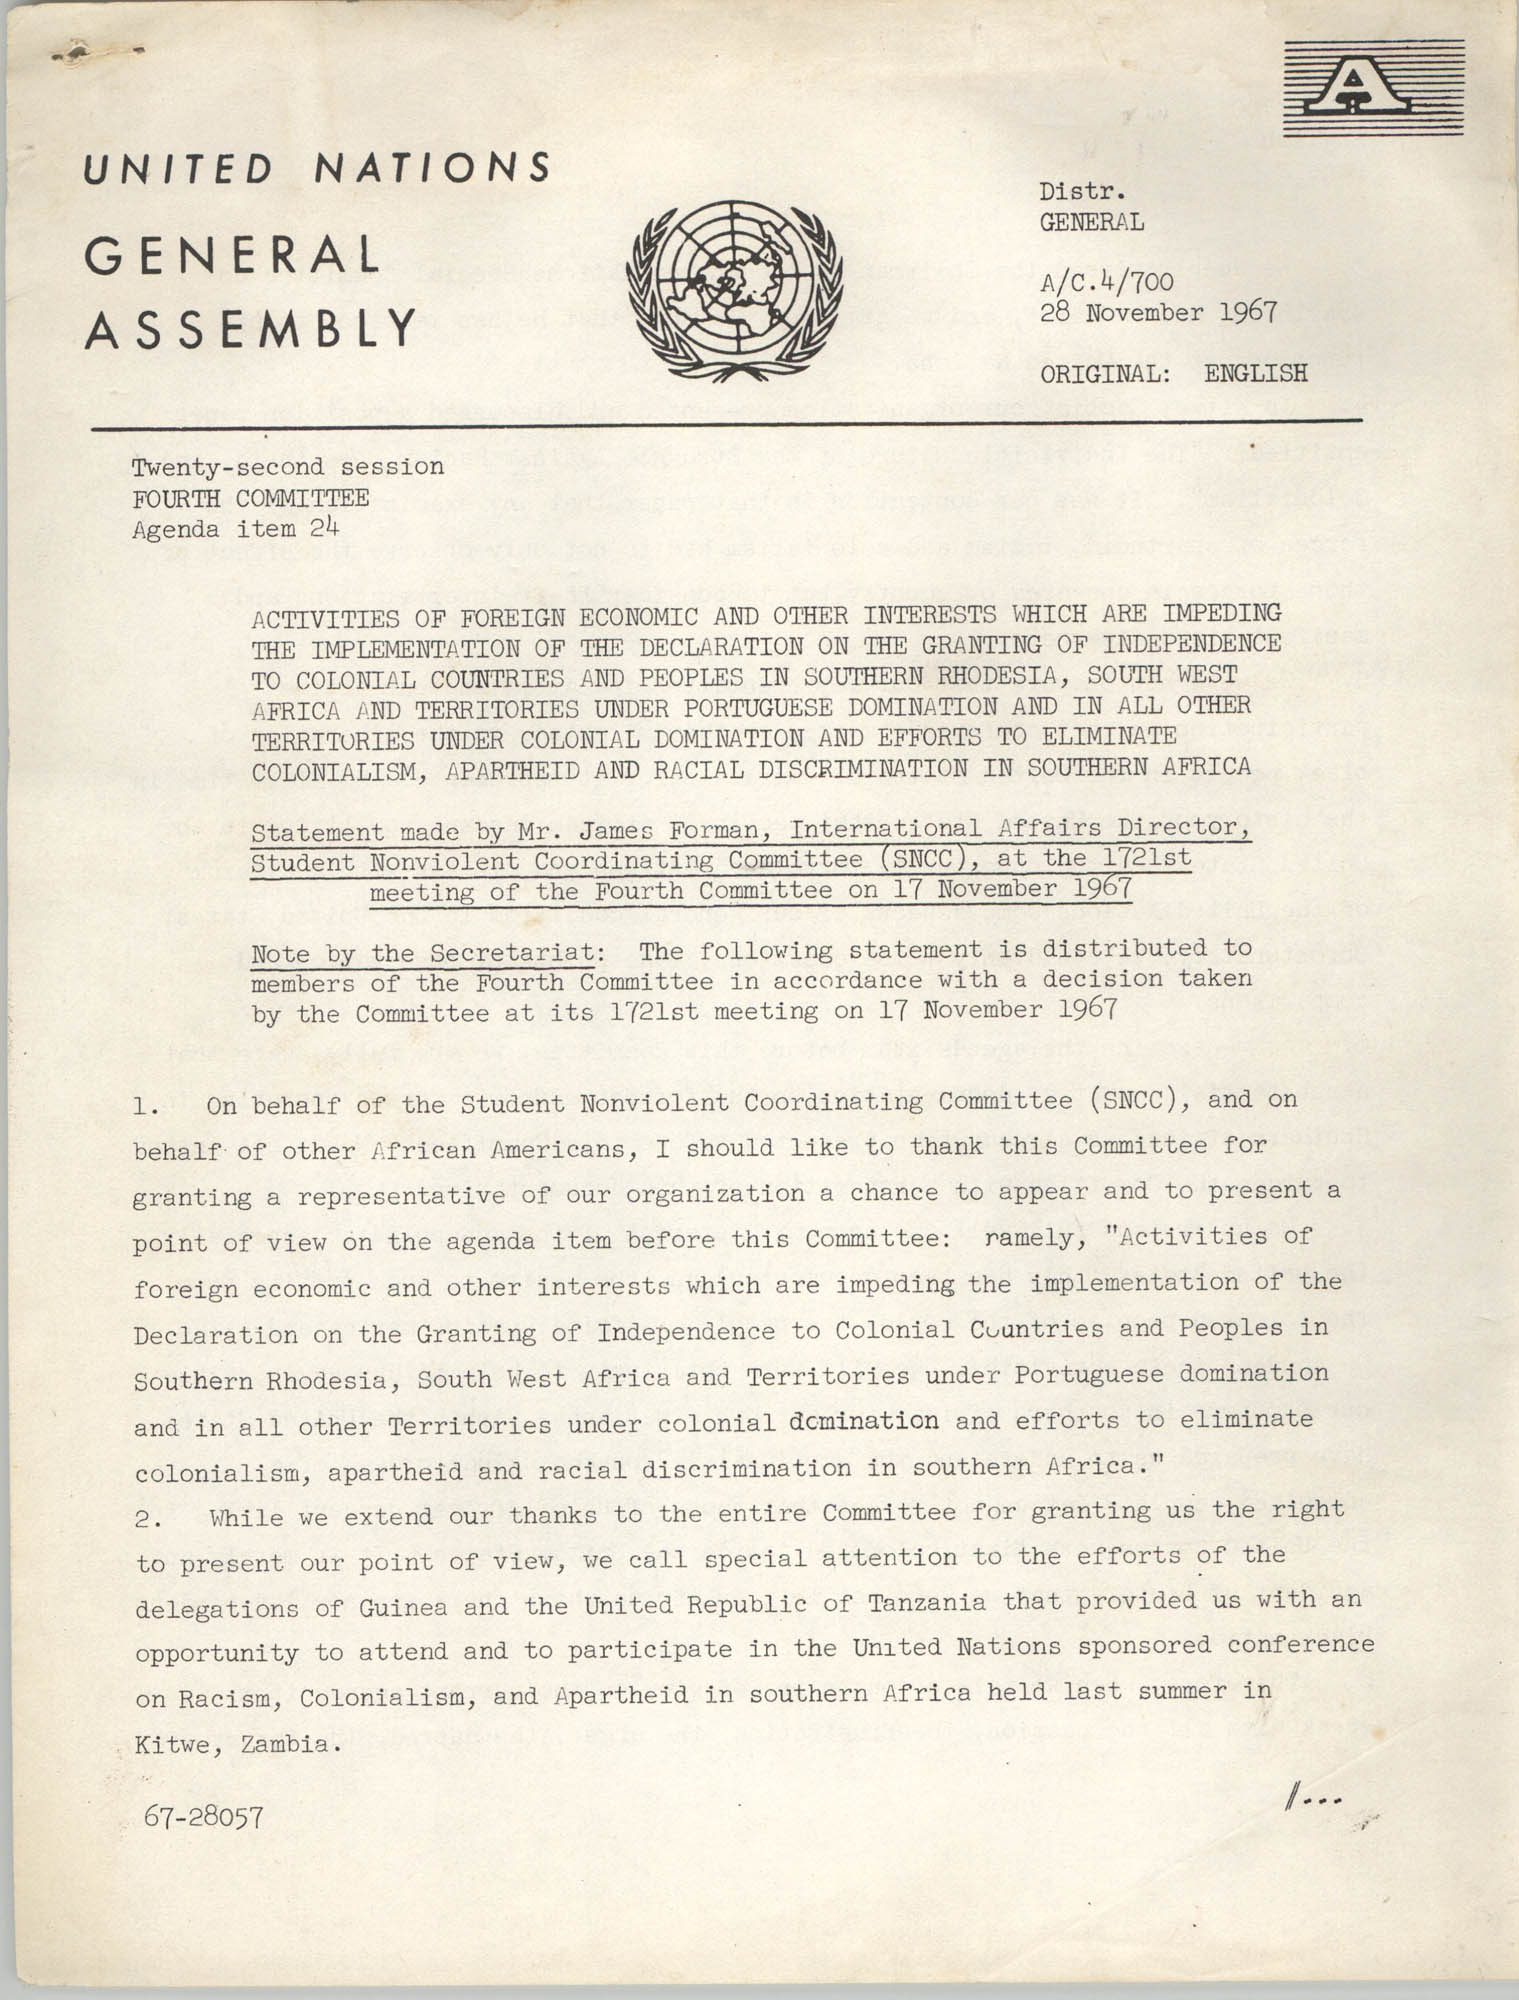 United Nations General Assembly Agenda Item 24: Student Nonviolent Coordinating Committee